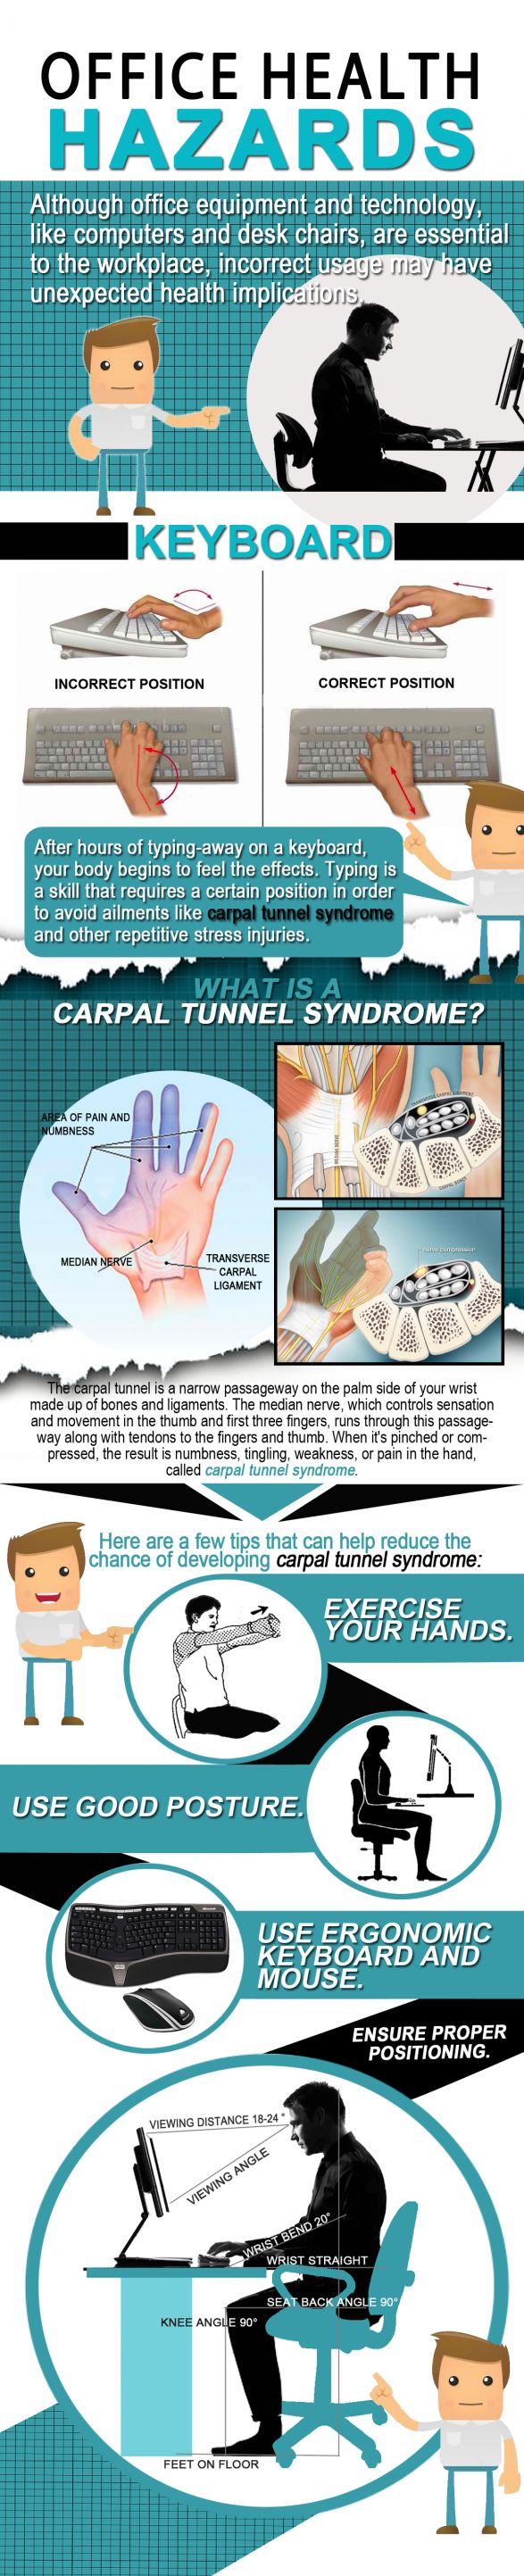 #Office #Health Hazard - How To Prevent Carpal Tunnel Syndrome